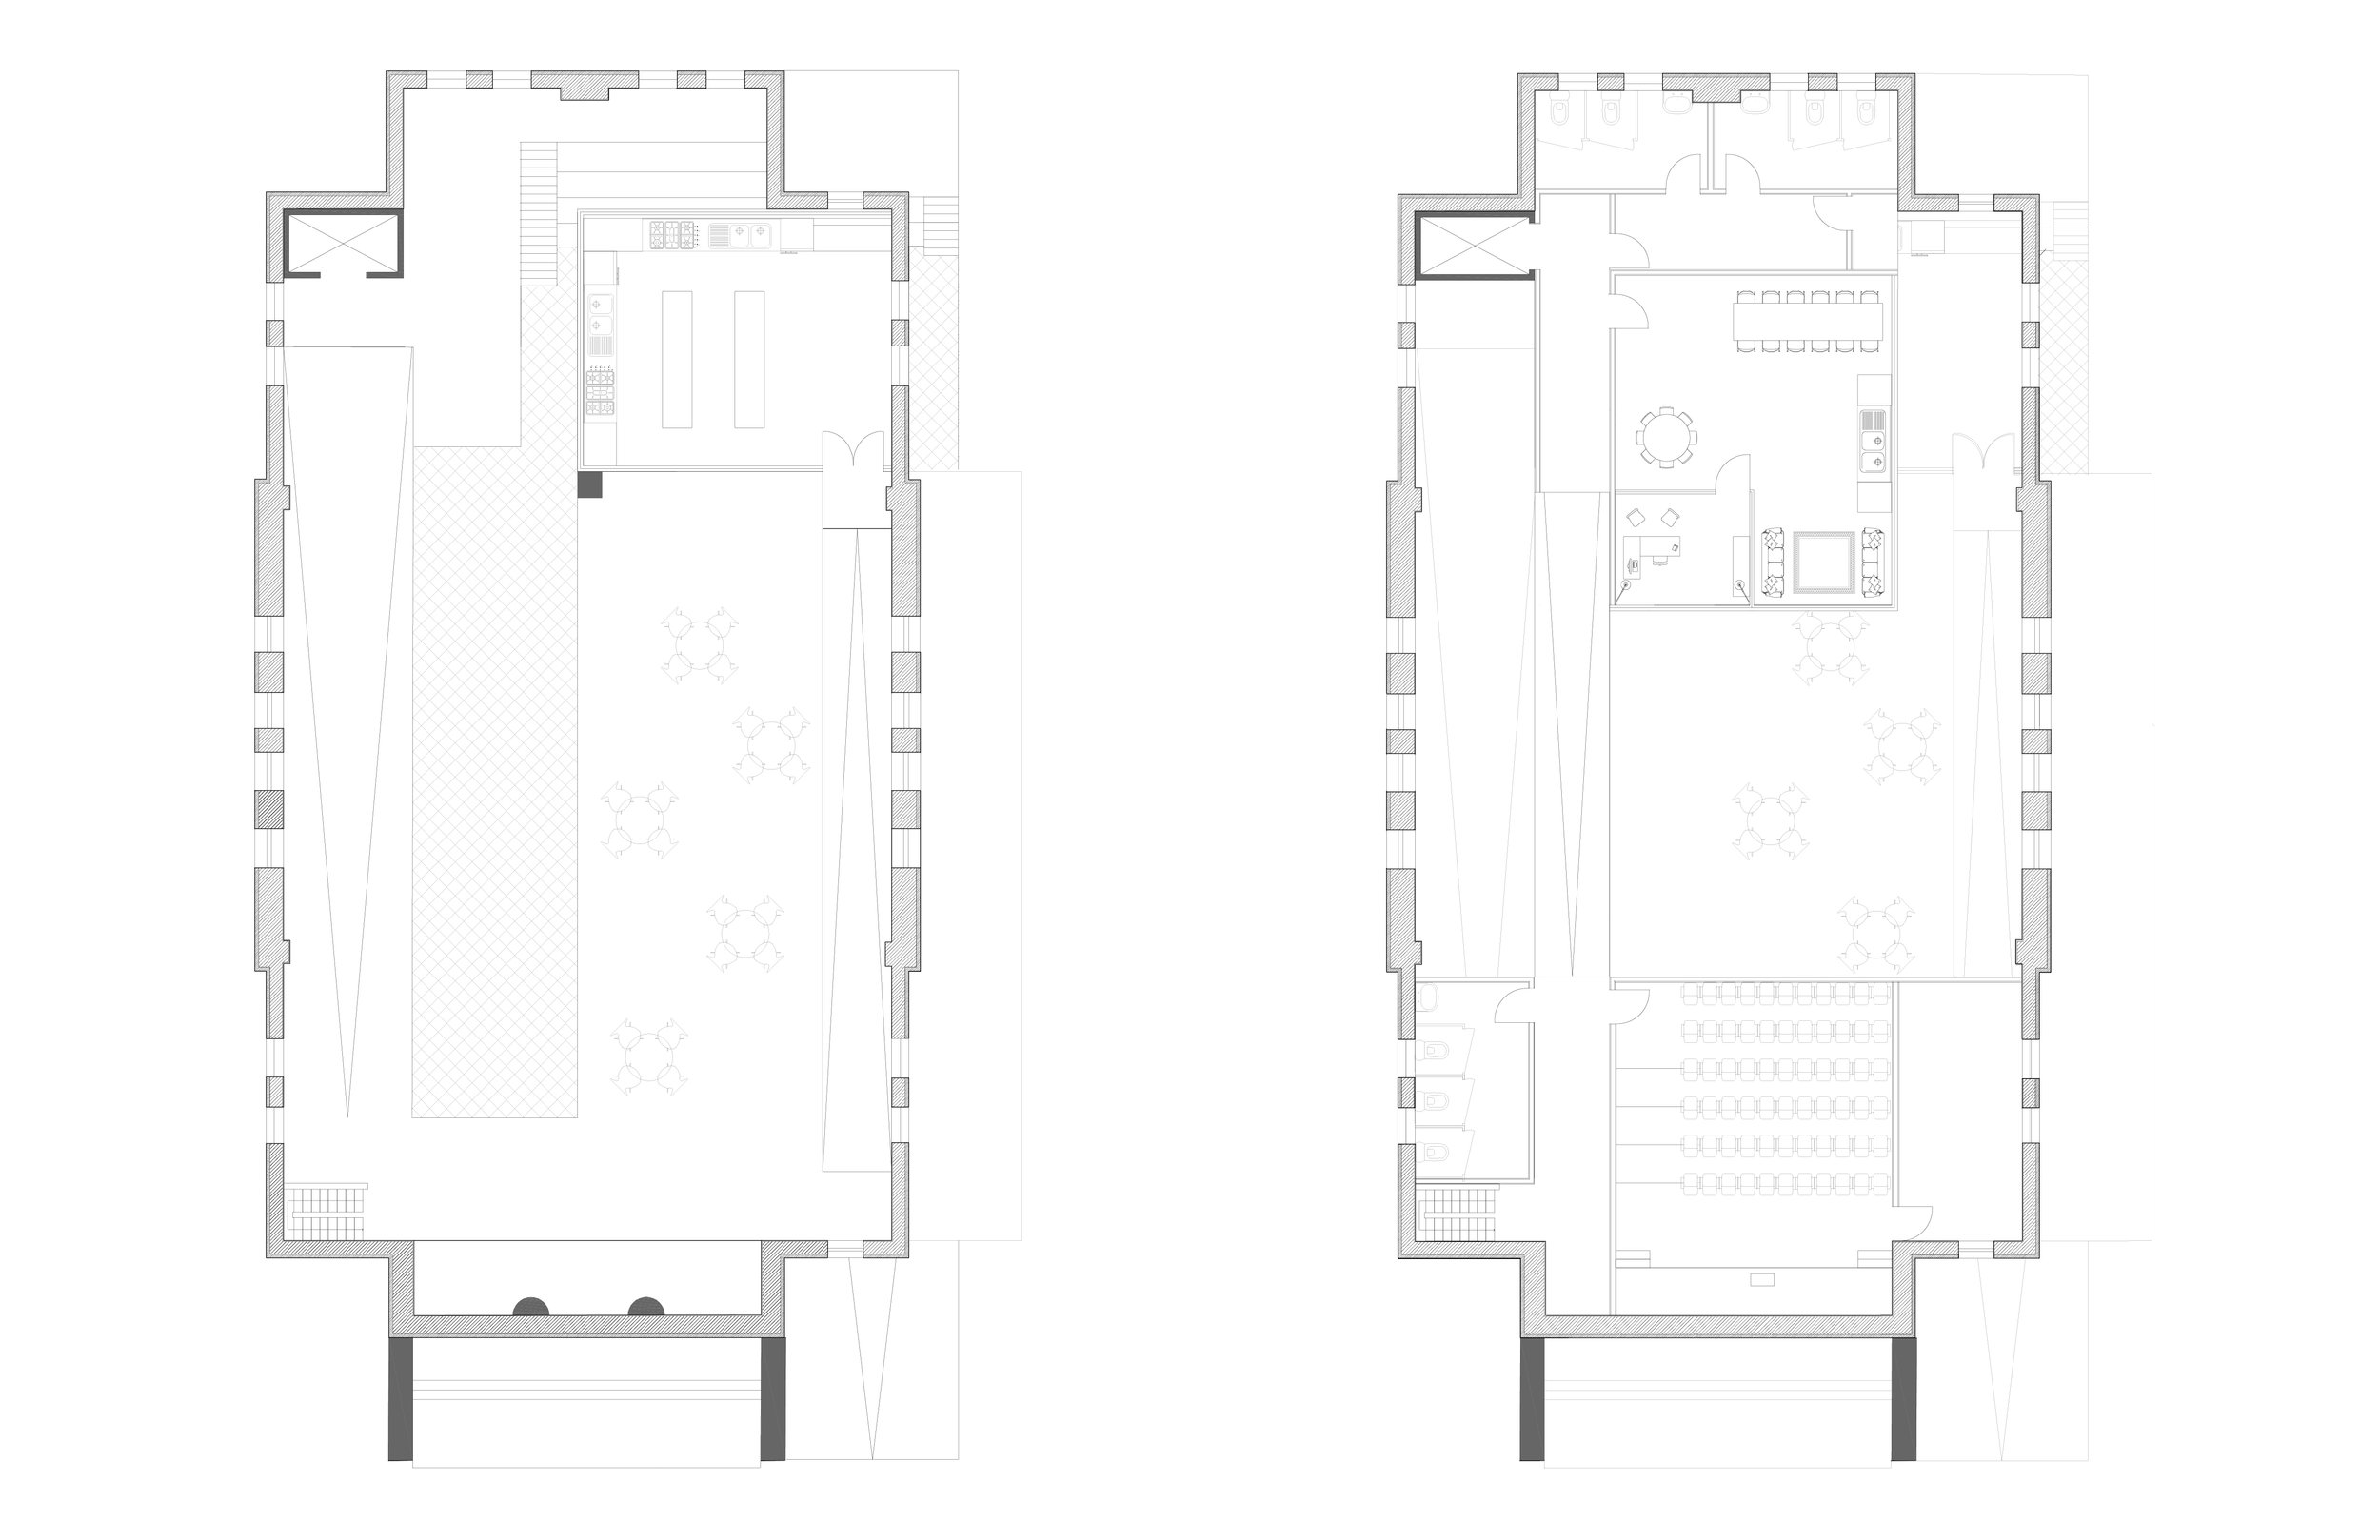 Plan - Floors 2 & 3